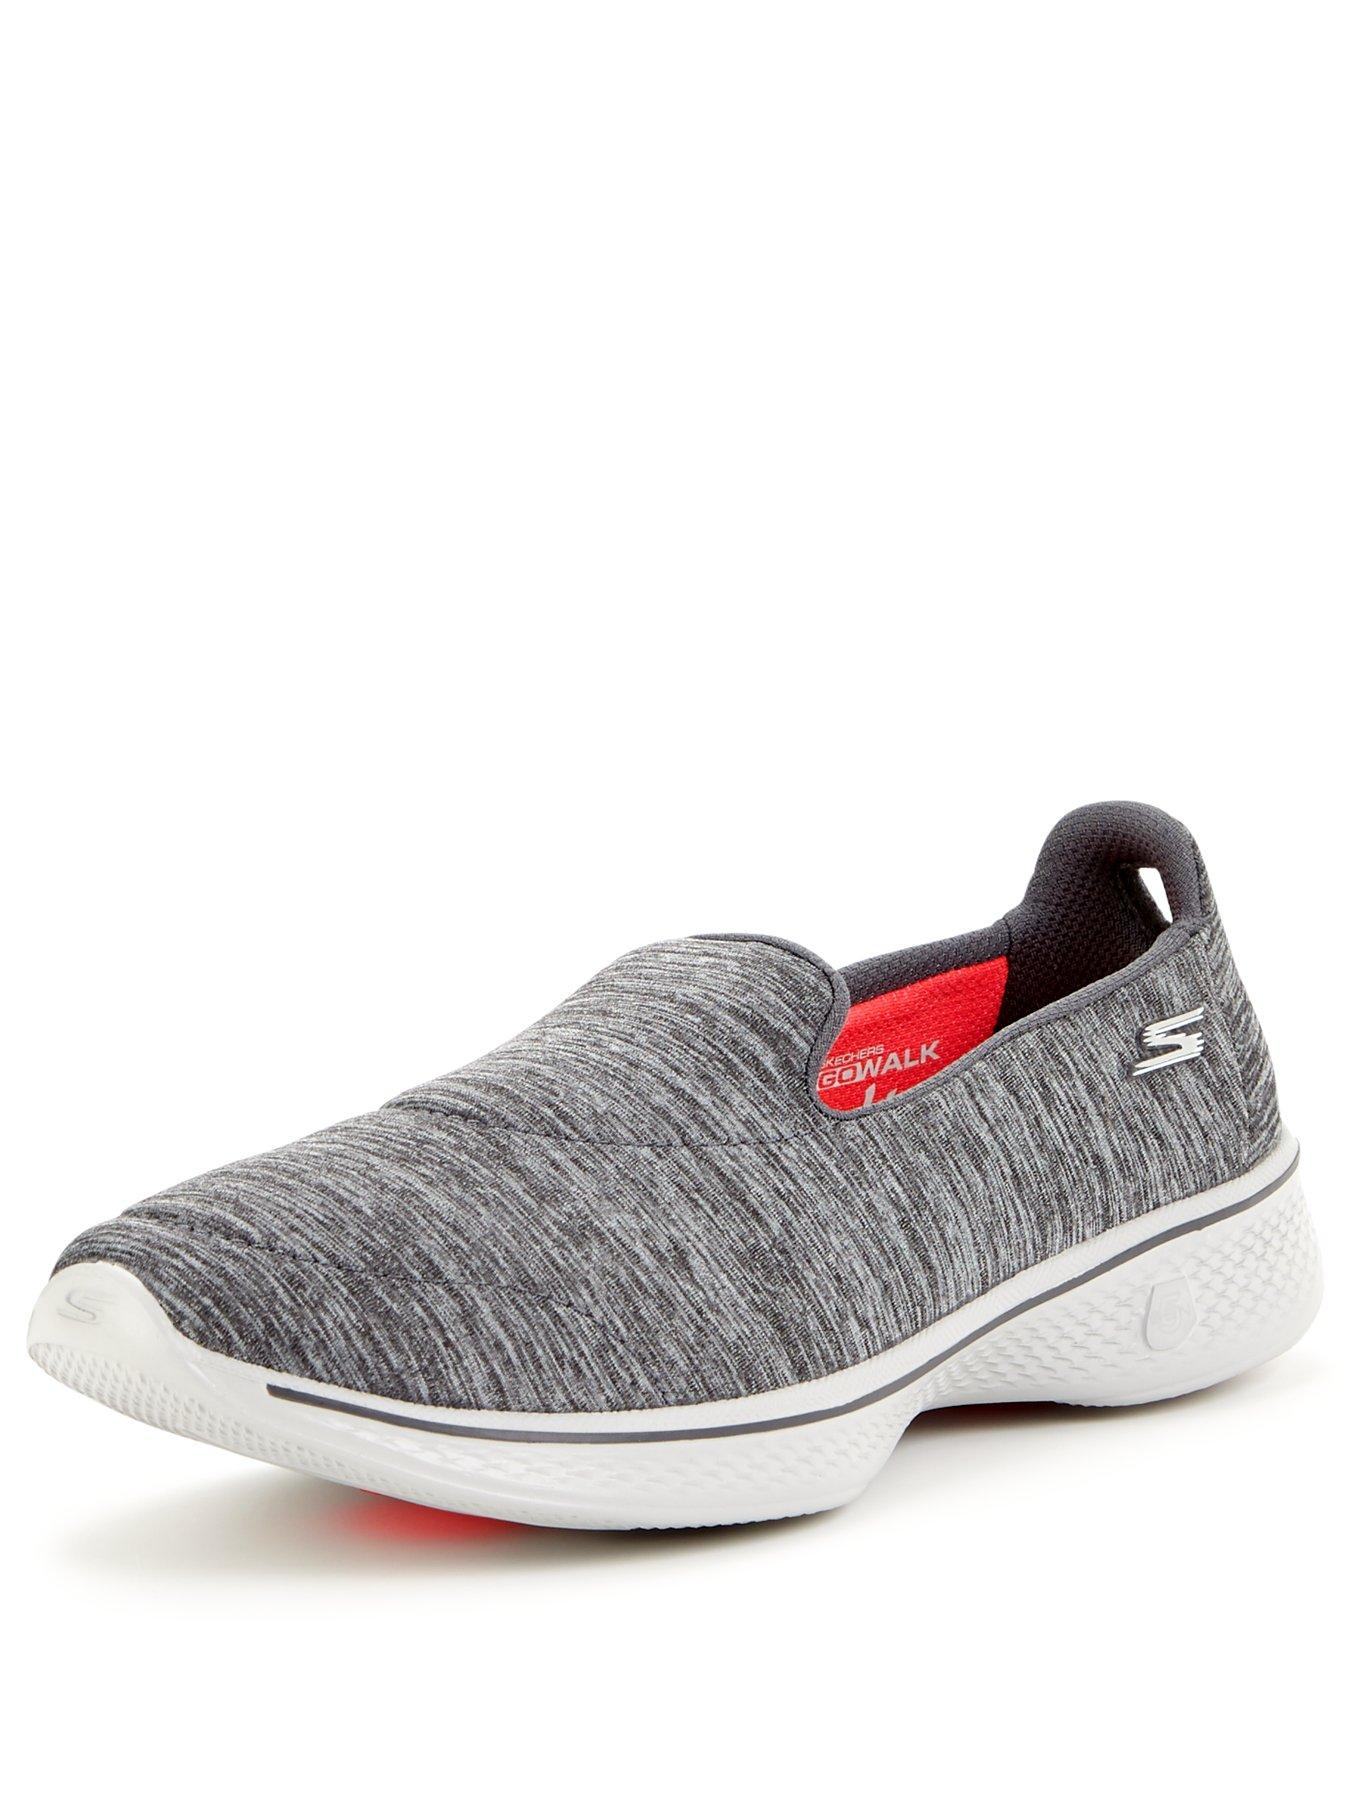 Find helpful customer reviews and review ratings for Skechers Performance Men's Go Walk 2 at reofeskofu.tk Read honest and unbiased product reviews from our users.